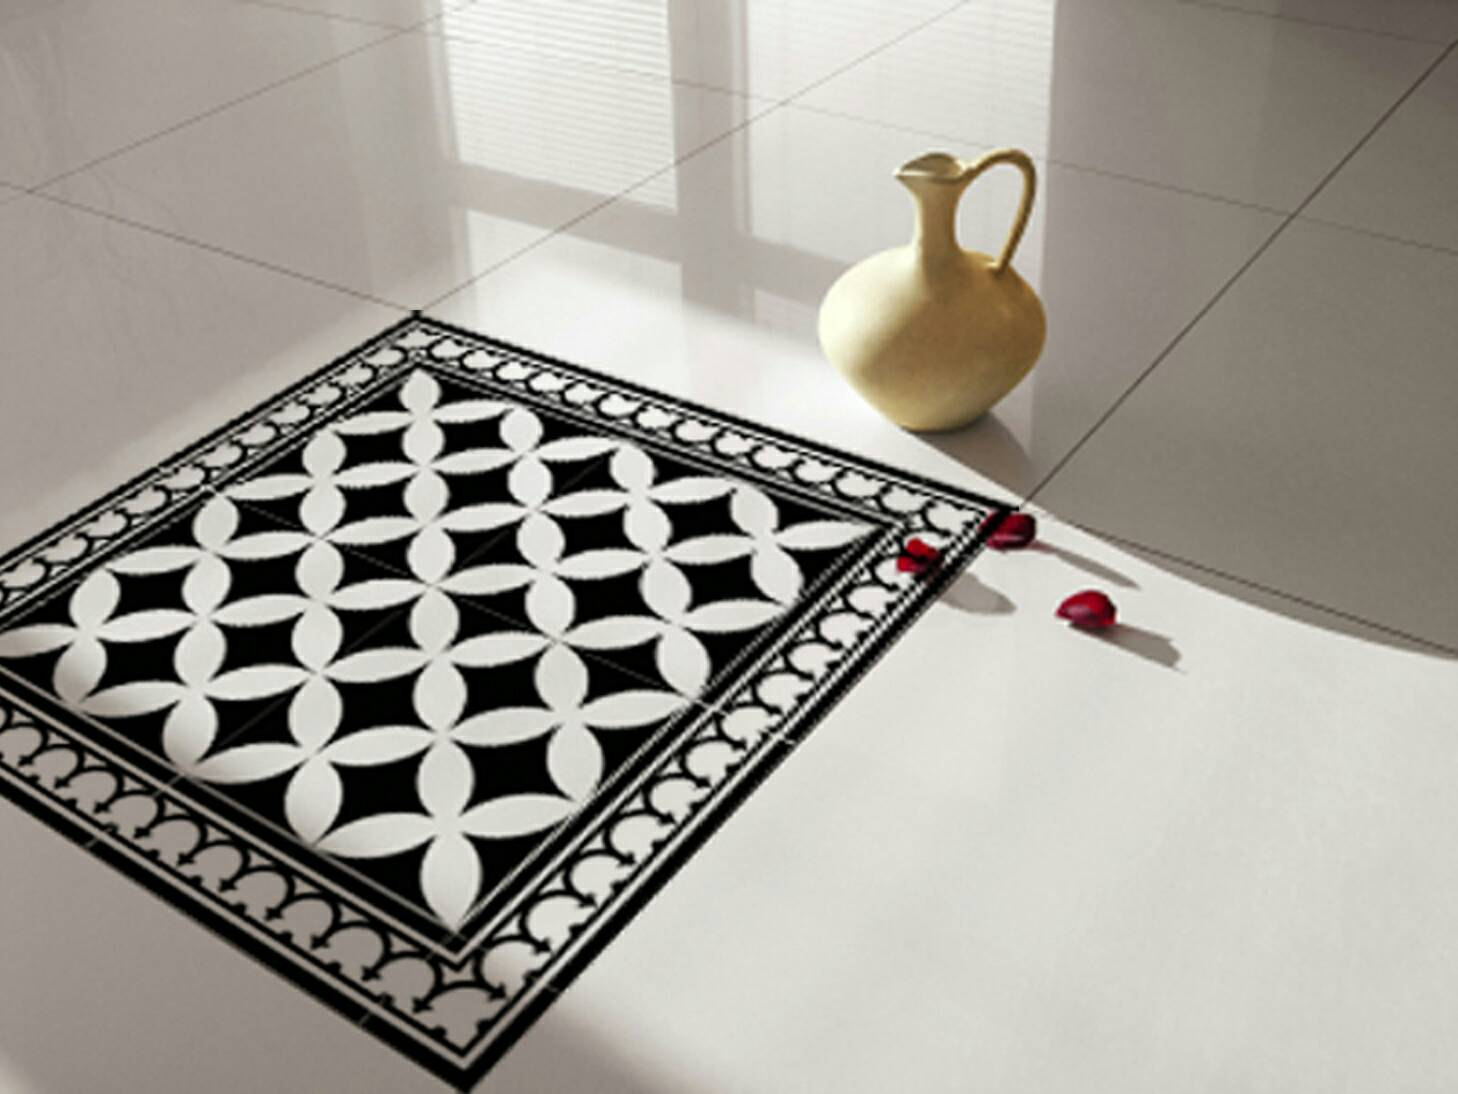 Traditional Tiles - Floor Tiles - Floor Vinyl - Tile Stickers - Tile Decals - bathroom tile decal - kitchen tile decal - 132